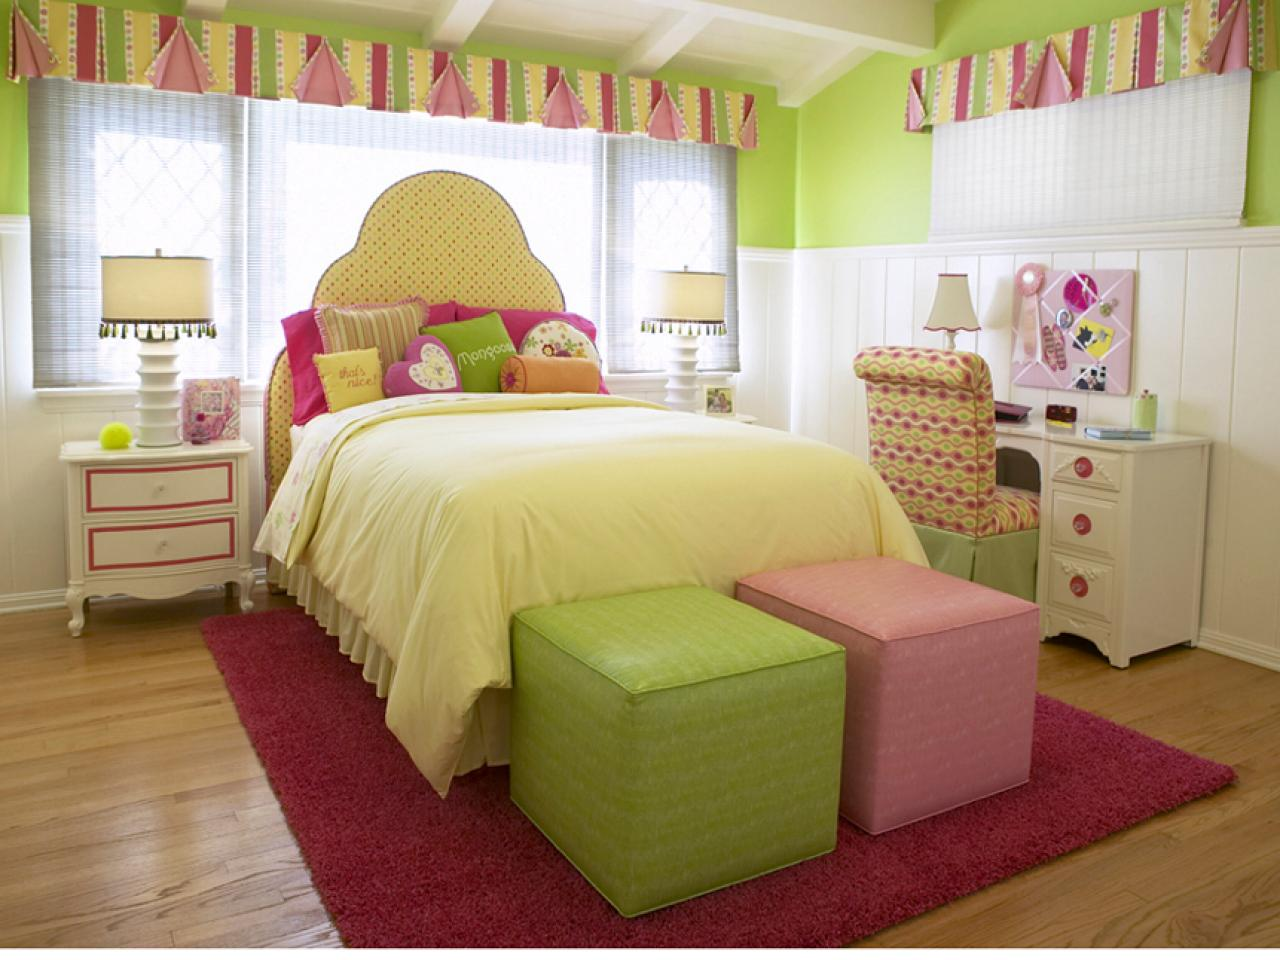 10 girly teen bedrooms kids room ideas for playroom bedroom